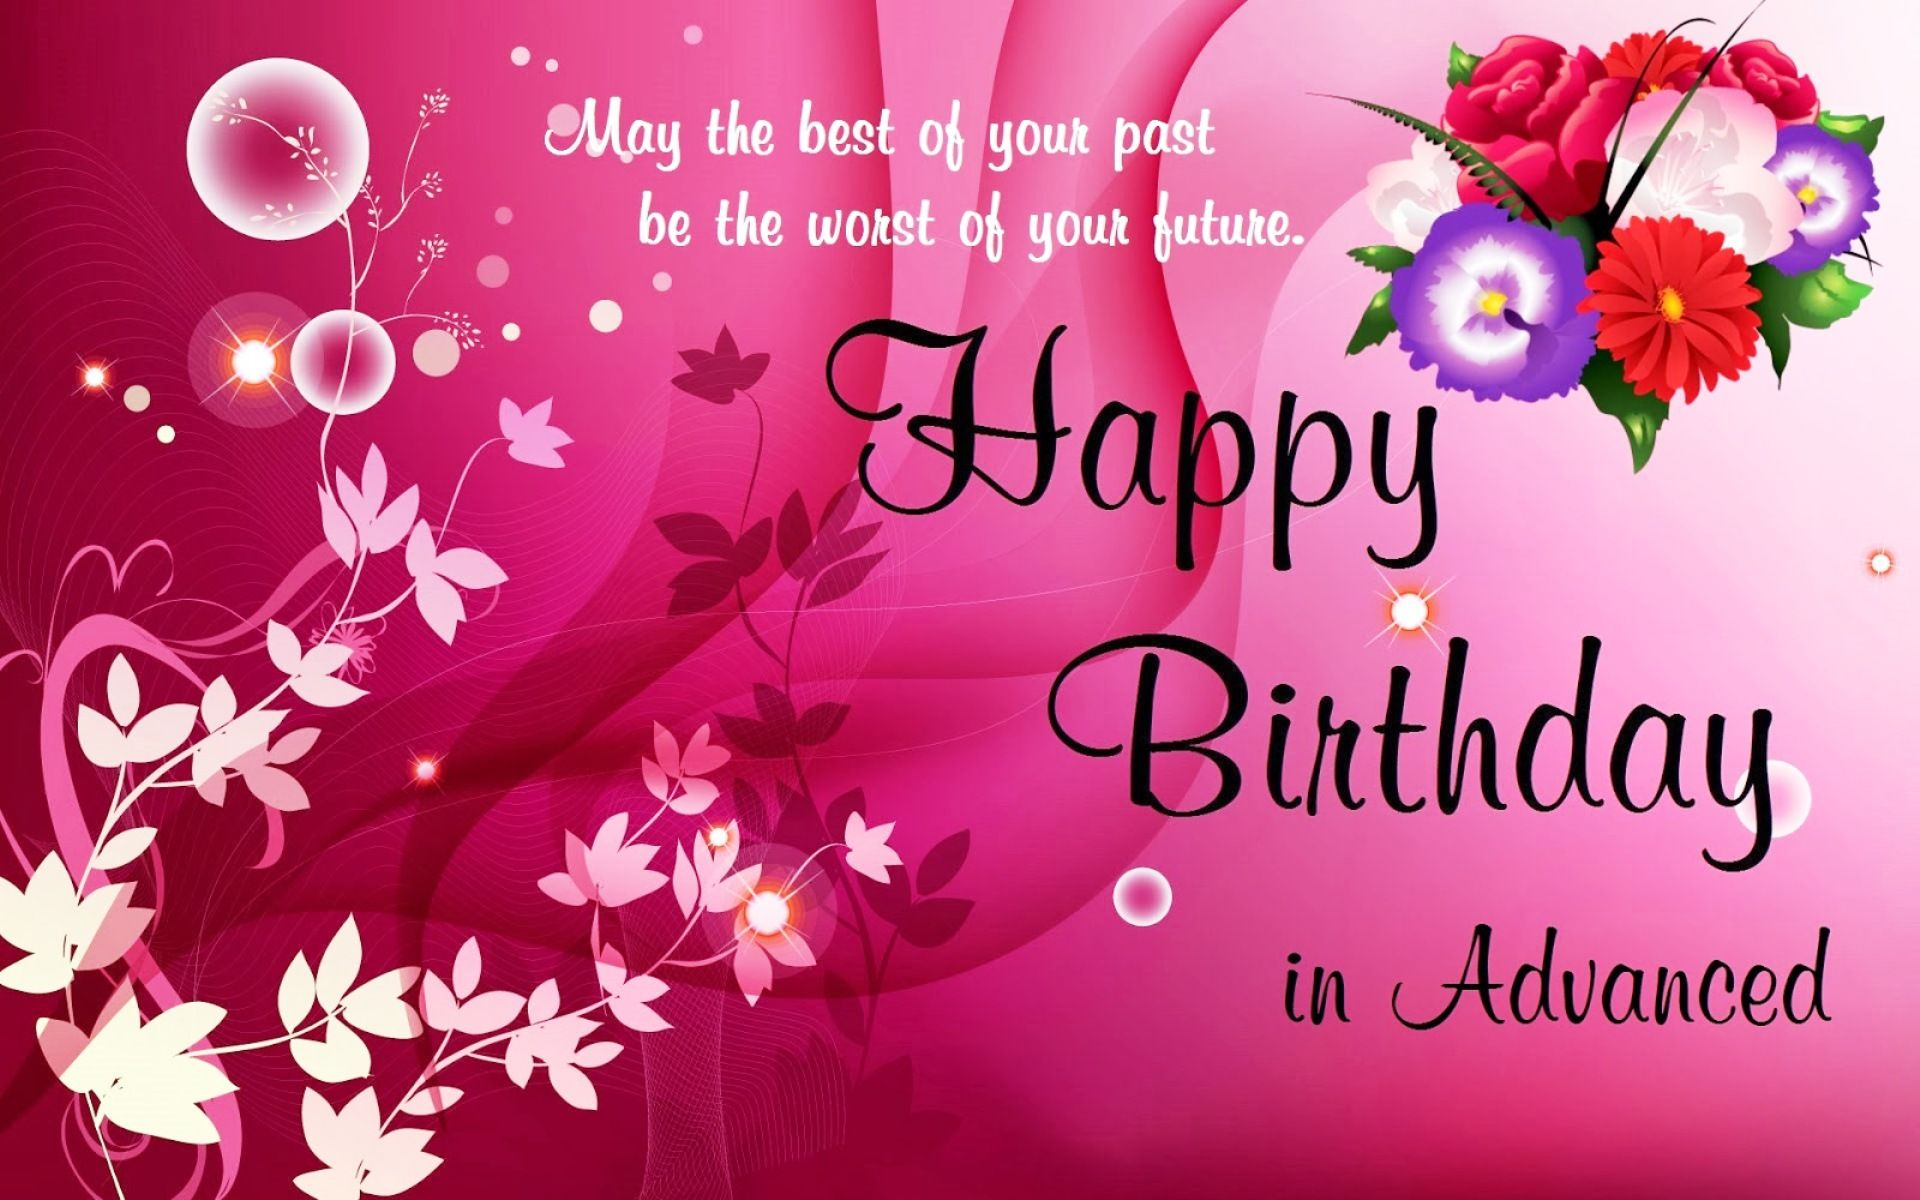 Happy Birthday Images free download with wishes Happy